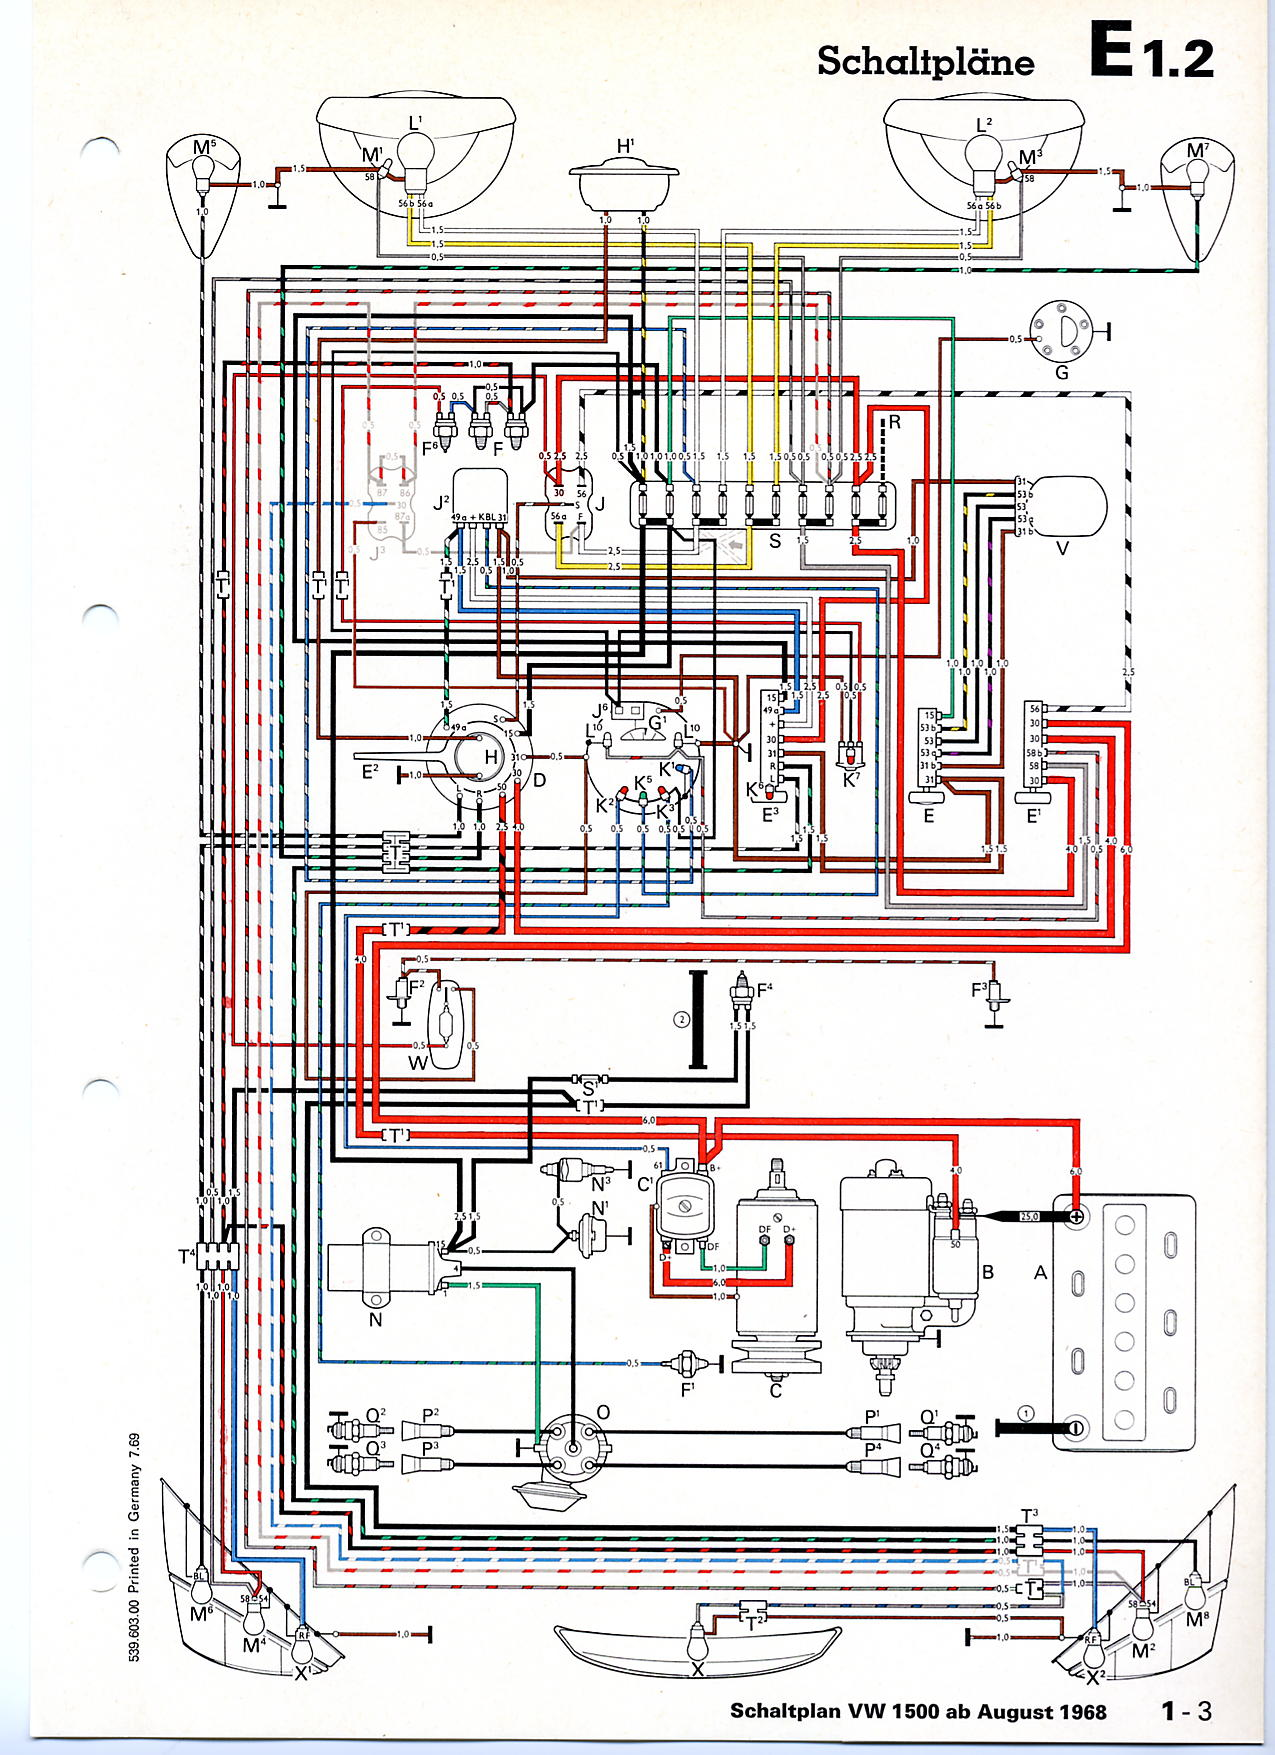 1969 vw beetle fuse diagram 1969 image wiring diagram 1969 vw bug wiring diagram images on 1969 vw beetle fuse diagram